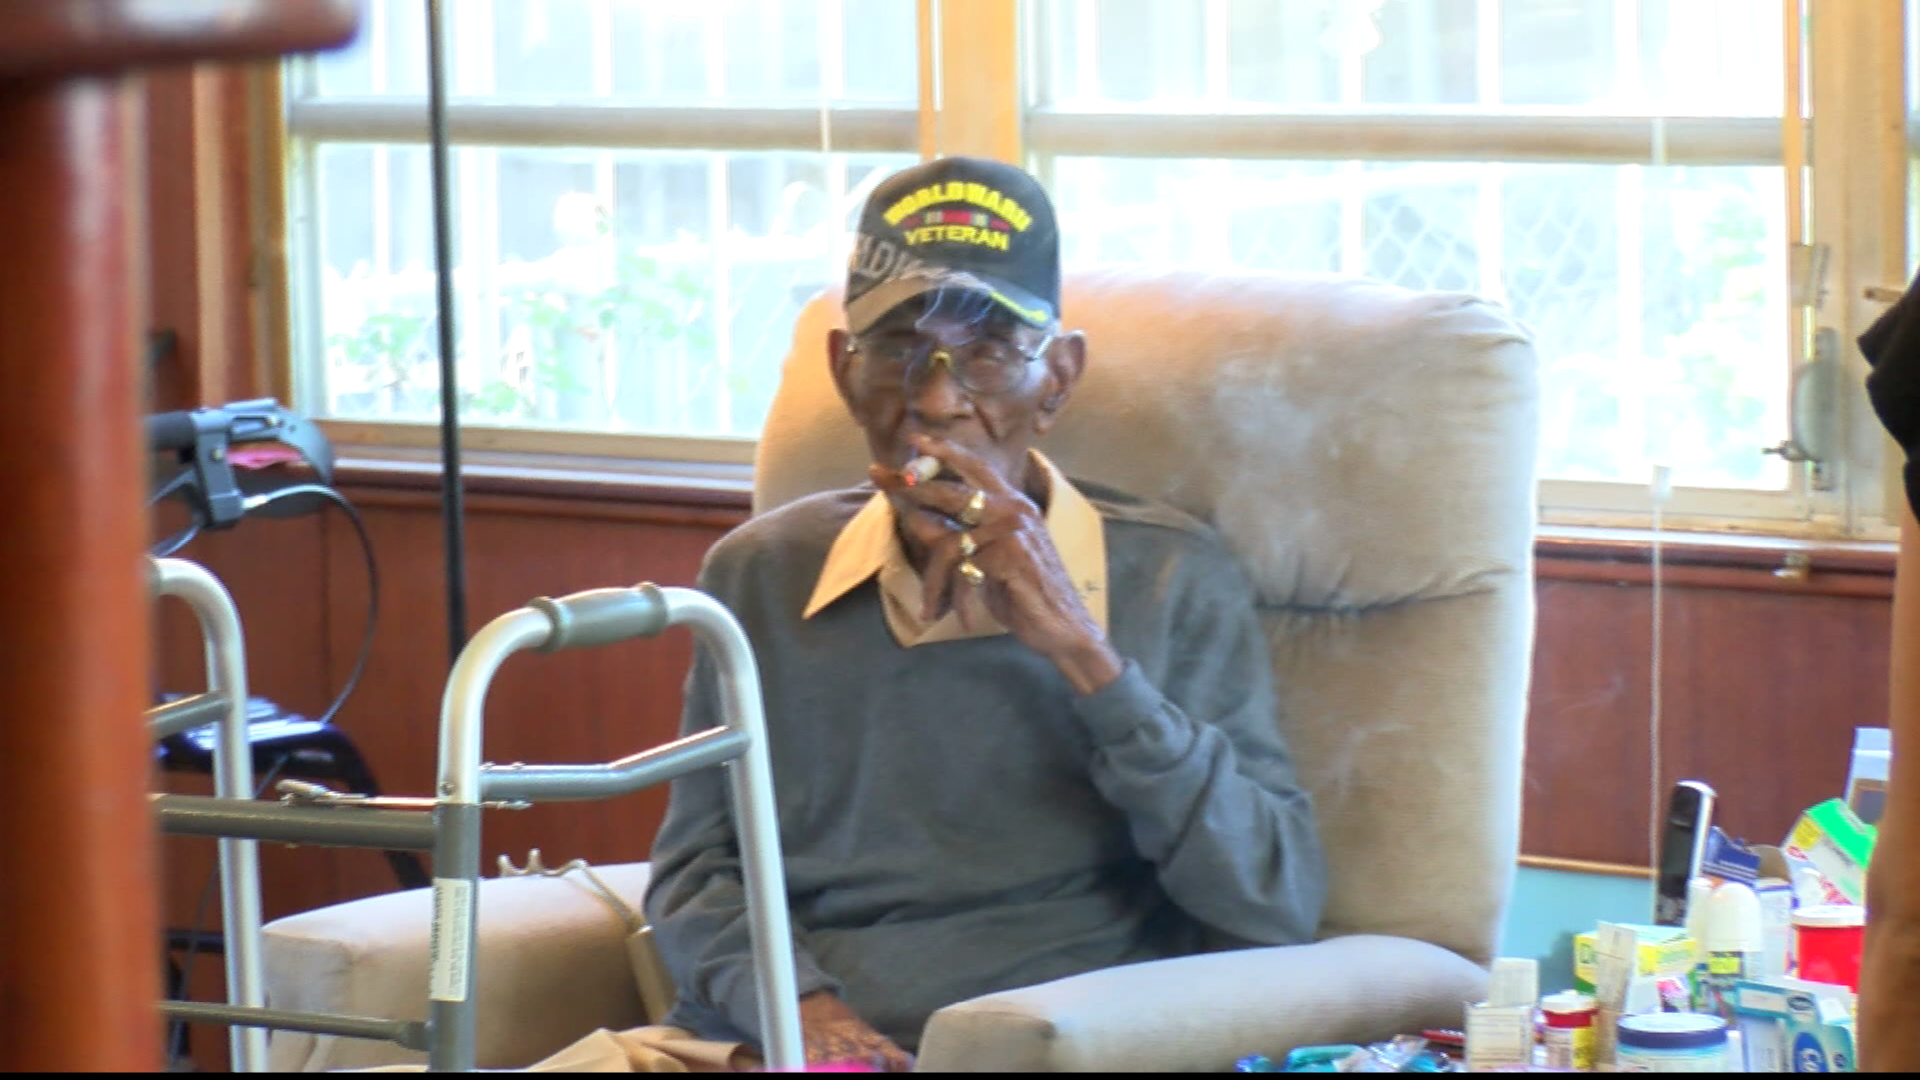 Richard Overton, the nation's oldest living WW II veteran, is enjoying his newly renovated Austin home. (CBS Austin)